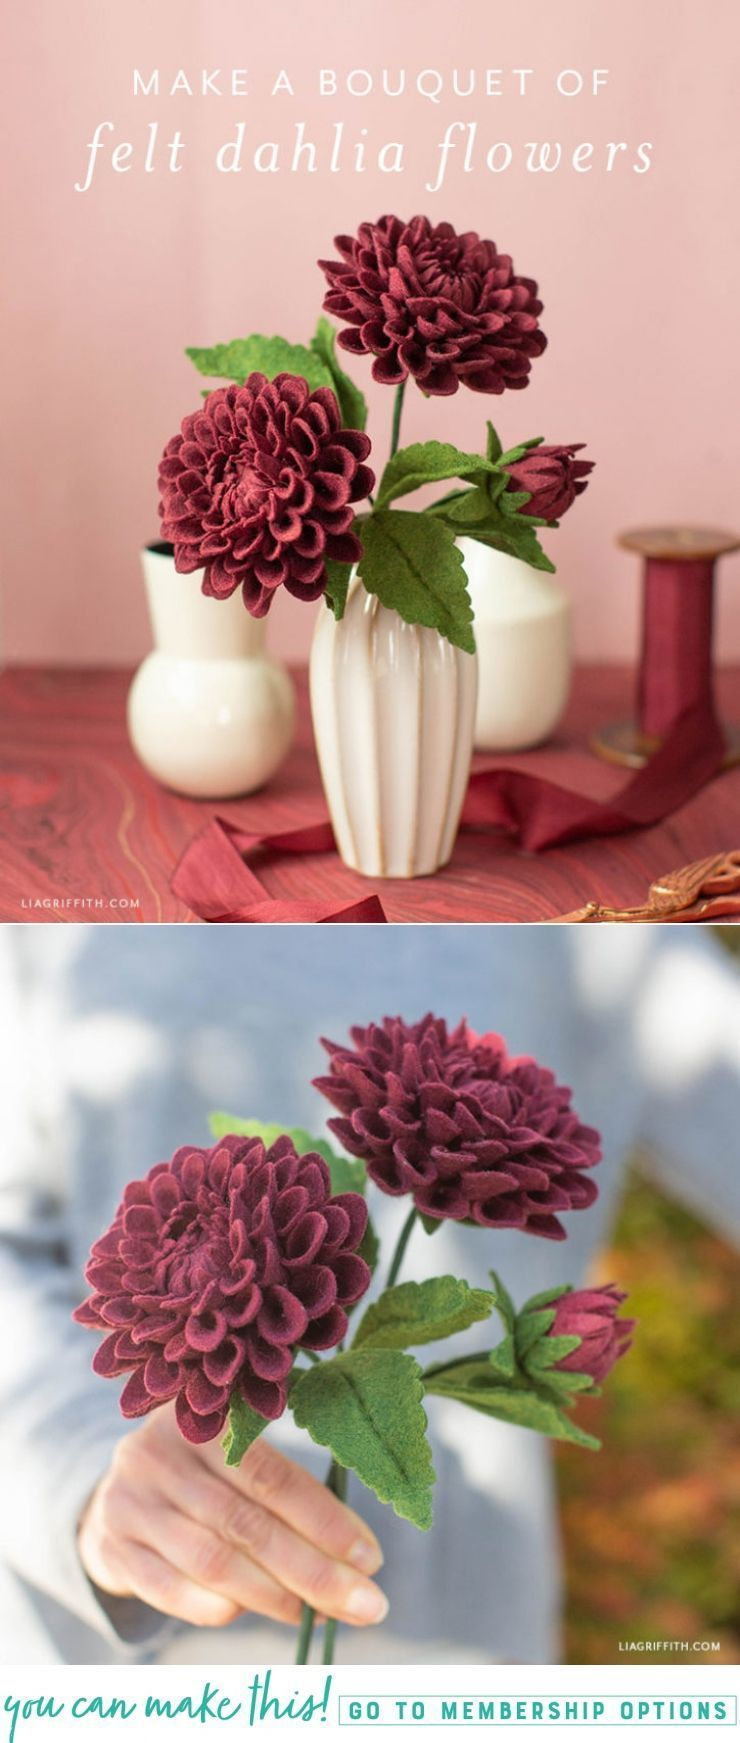 Felt Dahlia Flower Template and Tutorial #feltflowertemplate Felt Dahlia Flower Template and Tutorial #feltflowers #feltflowertemplate Felt Dahlia Flower Template and Tutorial #feltflowertemplate Felt Dahlia Flower Template and Tutorial #feltflowers #feltflowertemplate